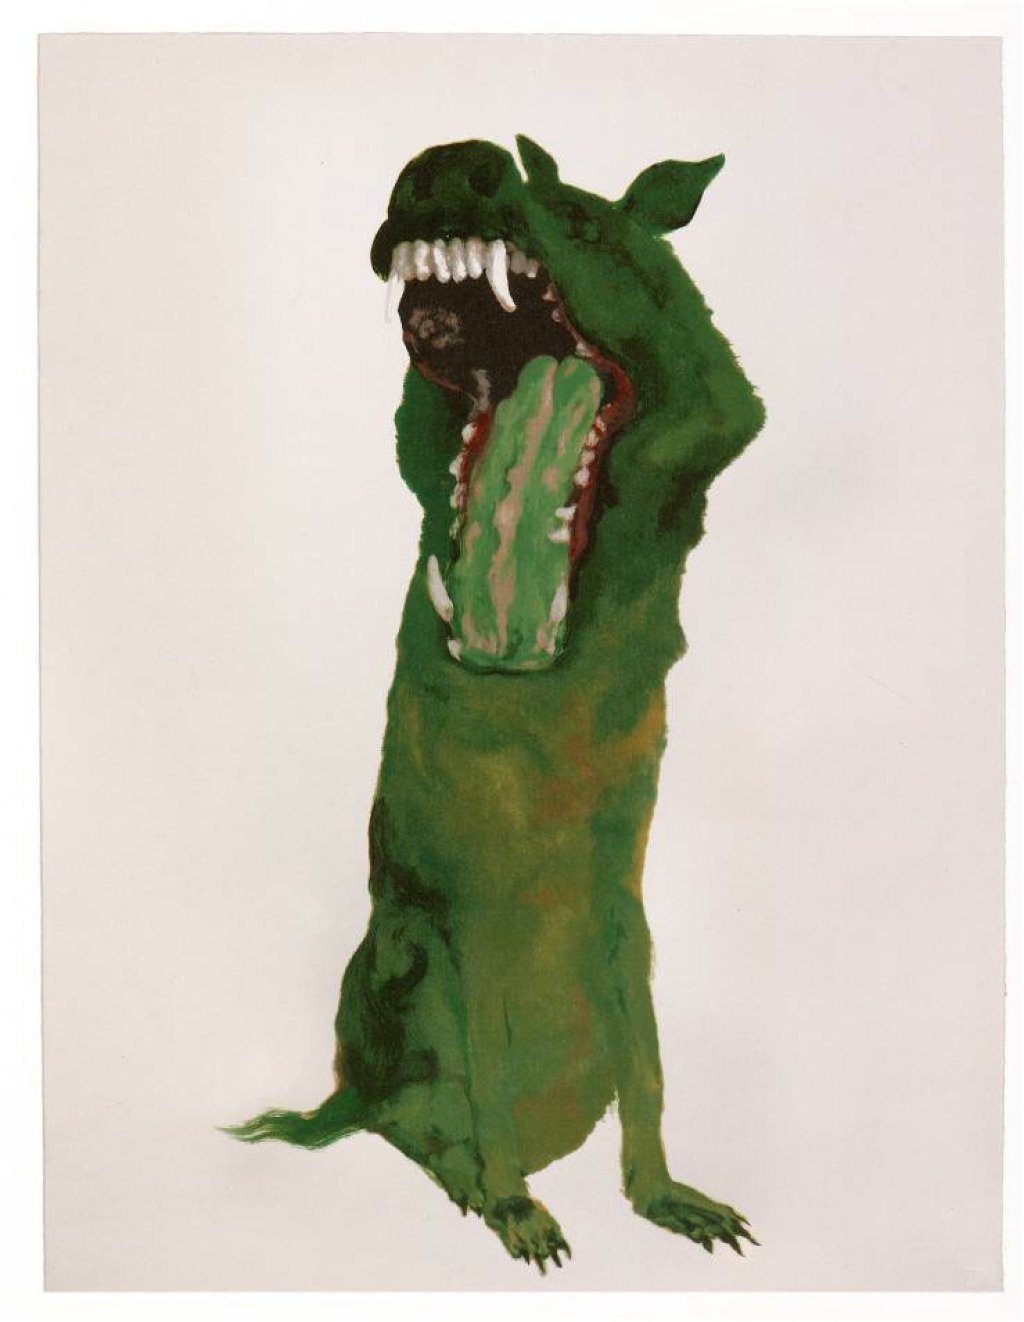 main work - Zhou Chunya , Green Dog